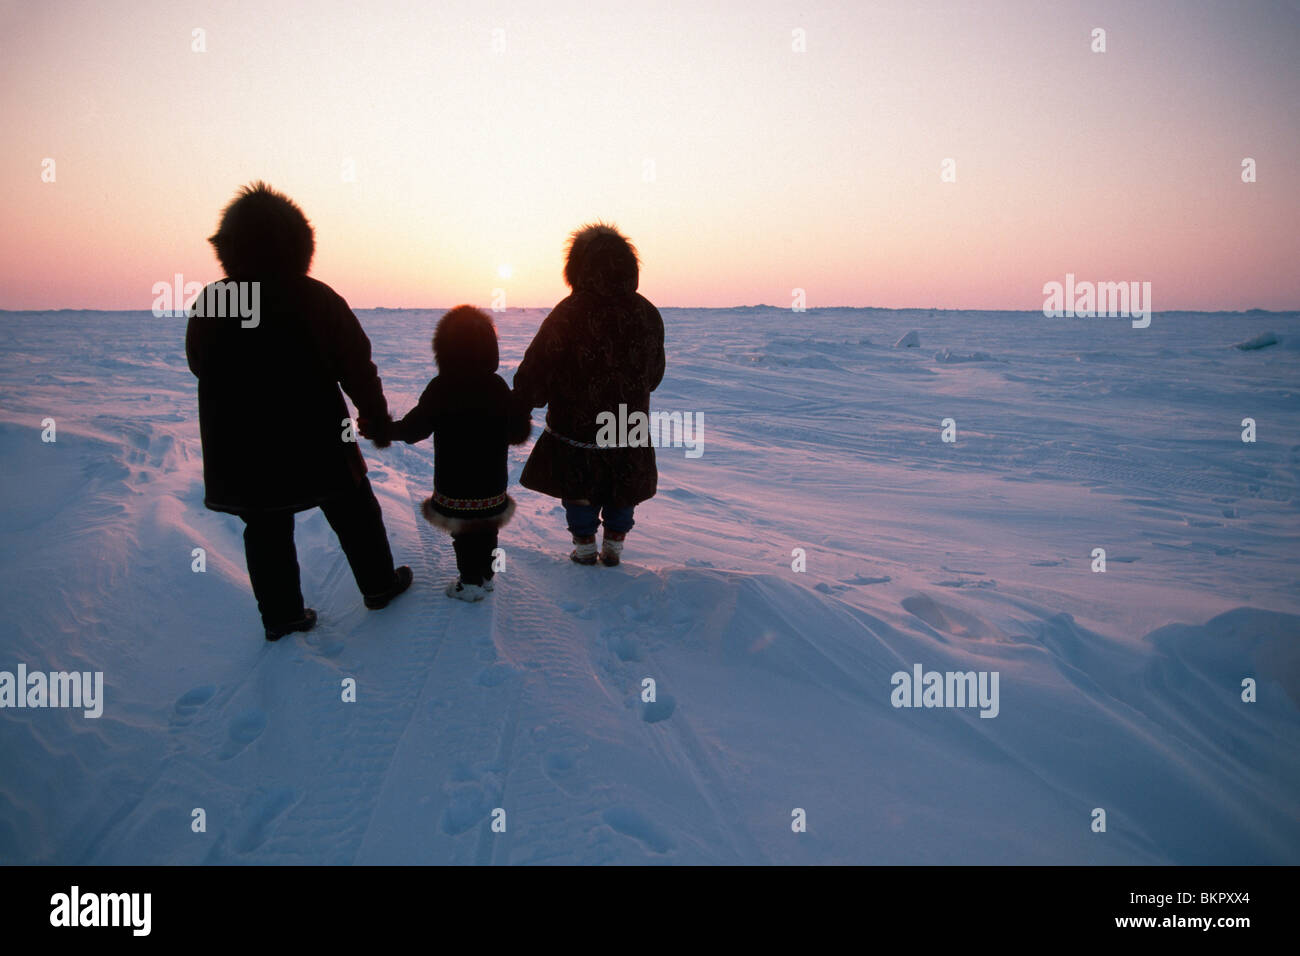 Inupiat Eskimo Family Viewing Snow Covered Tundra Barrow Arctic Alaska Sunset Winter - Stock Image